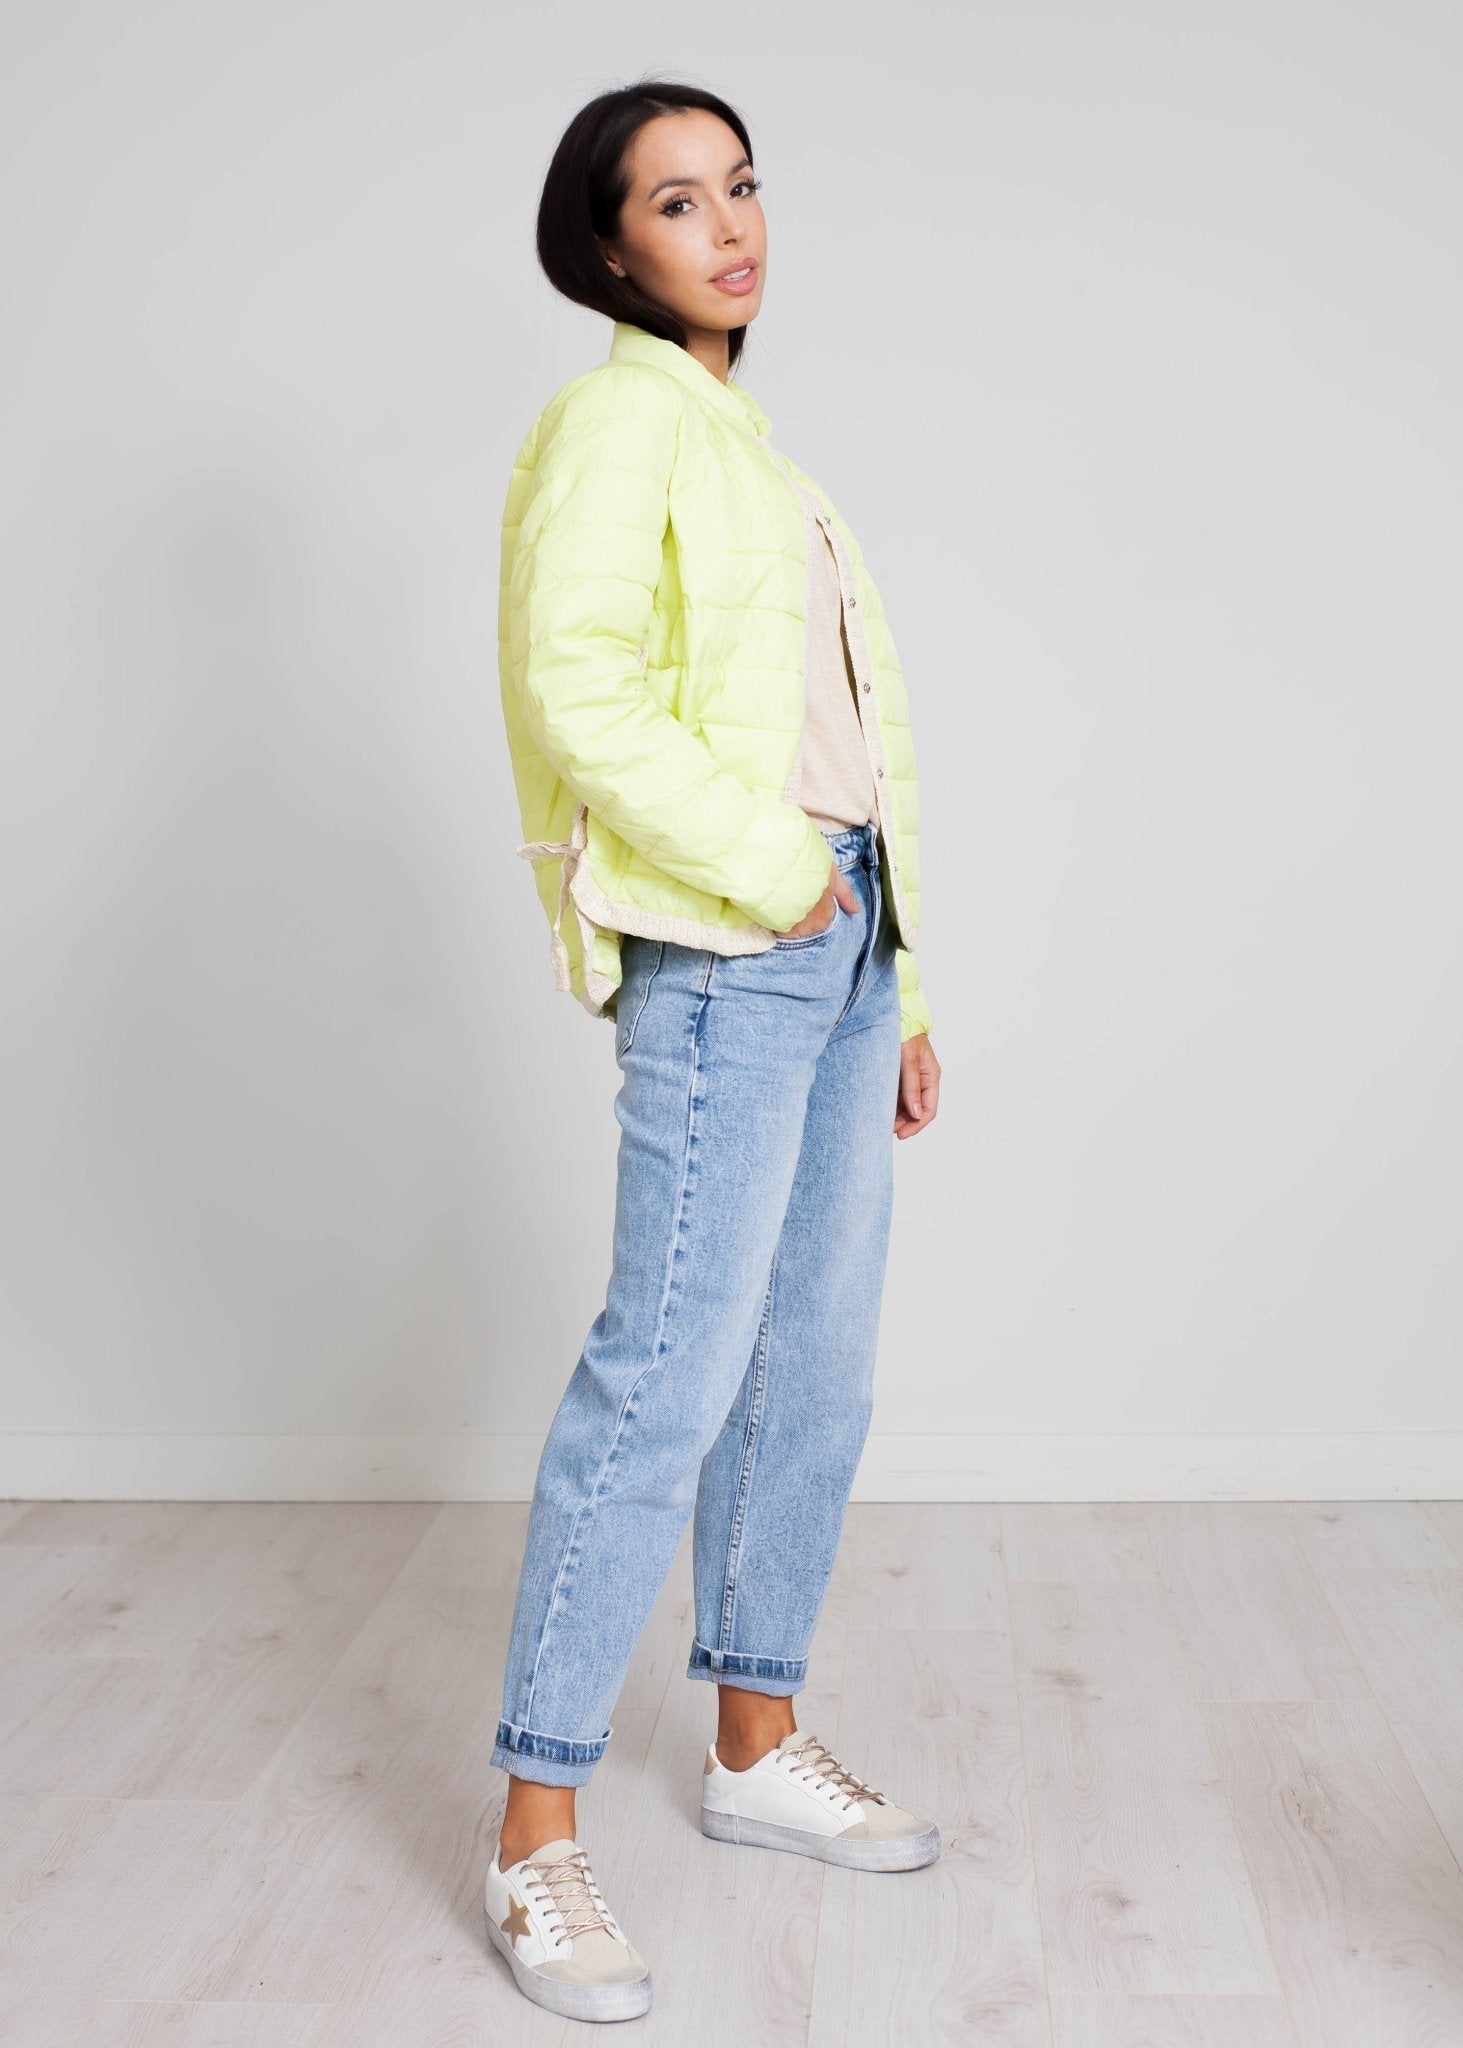 Alba Side Detail Jacket In Lemon - The Walk in Wardrobe